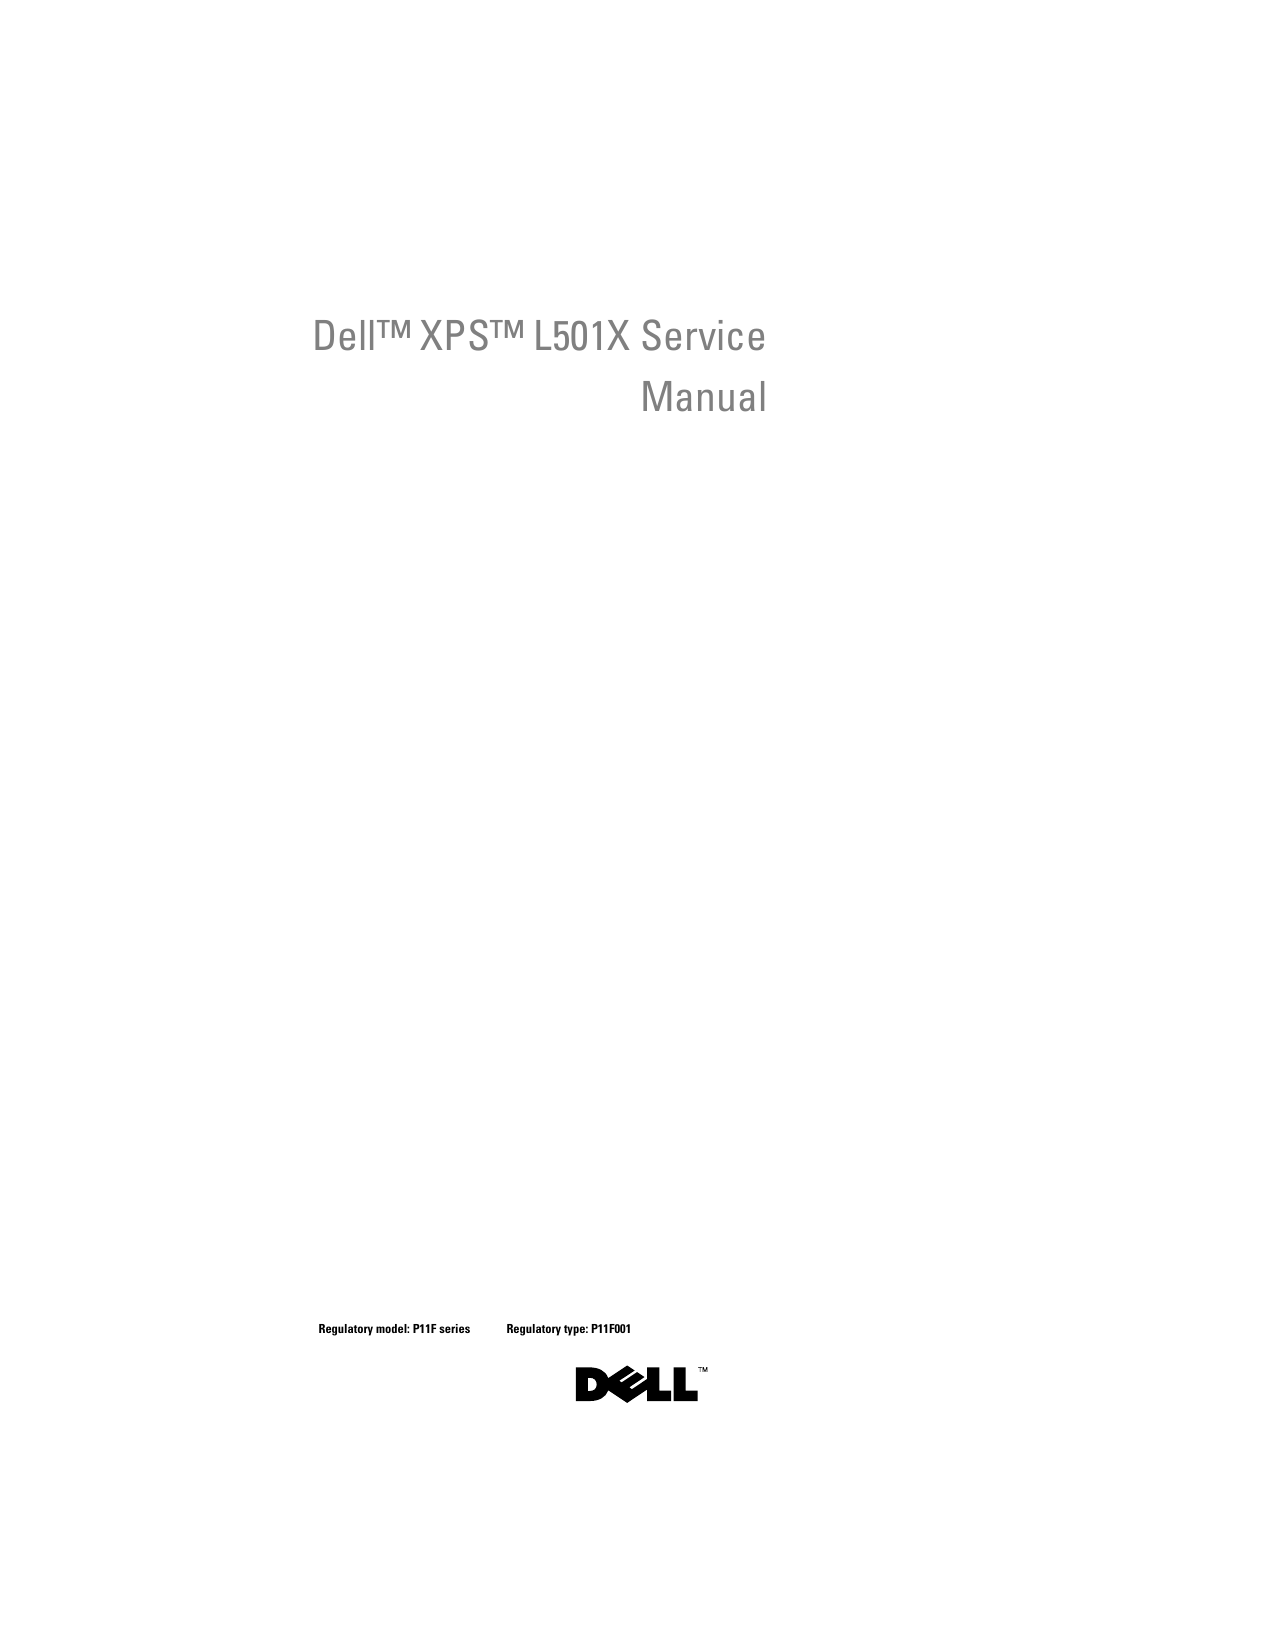 Dell manual xps 15 dell xps 15 array dell xps 15 l501x late 2010 quick start manual free pdf rh manualagent com fandeluxe Choice Image